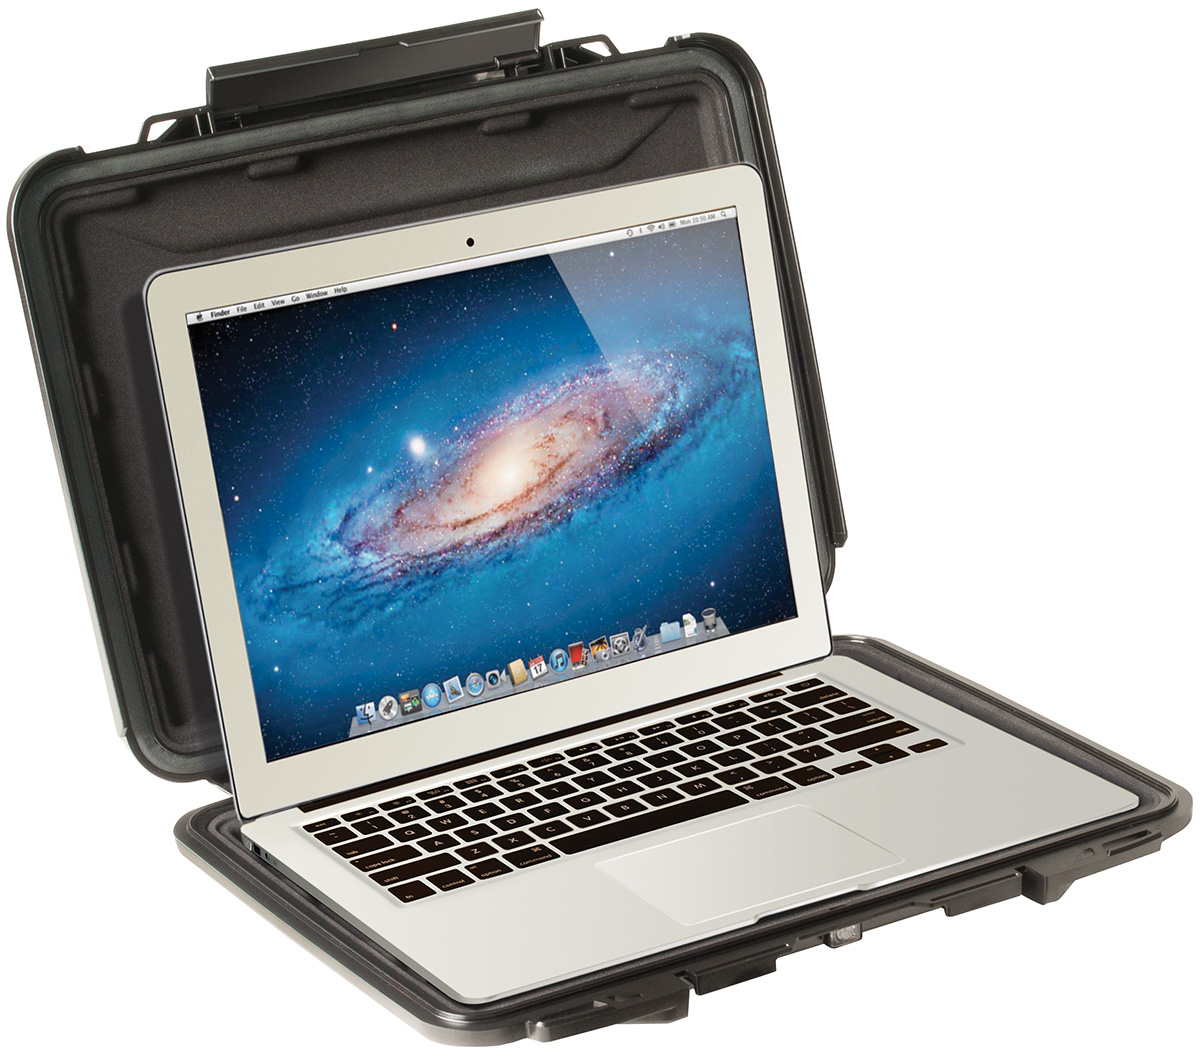 pelican peli products 1070CC hard macbook air laptop protective case